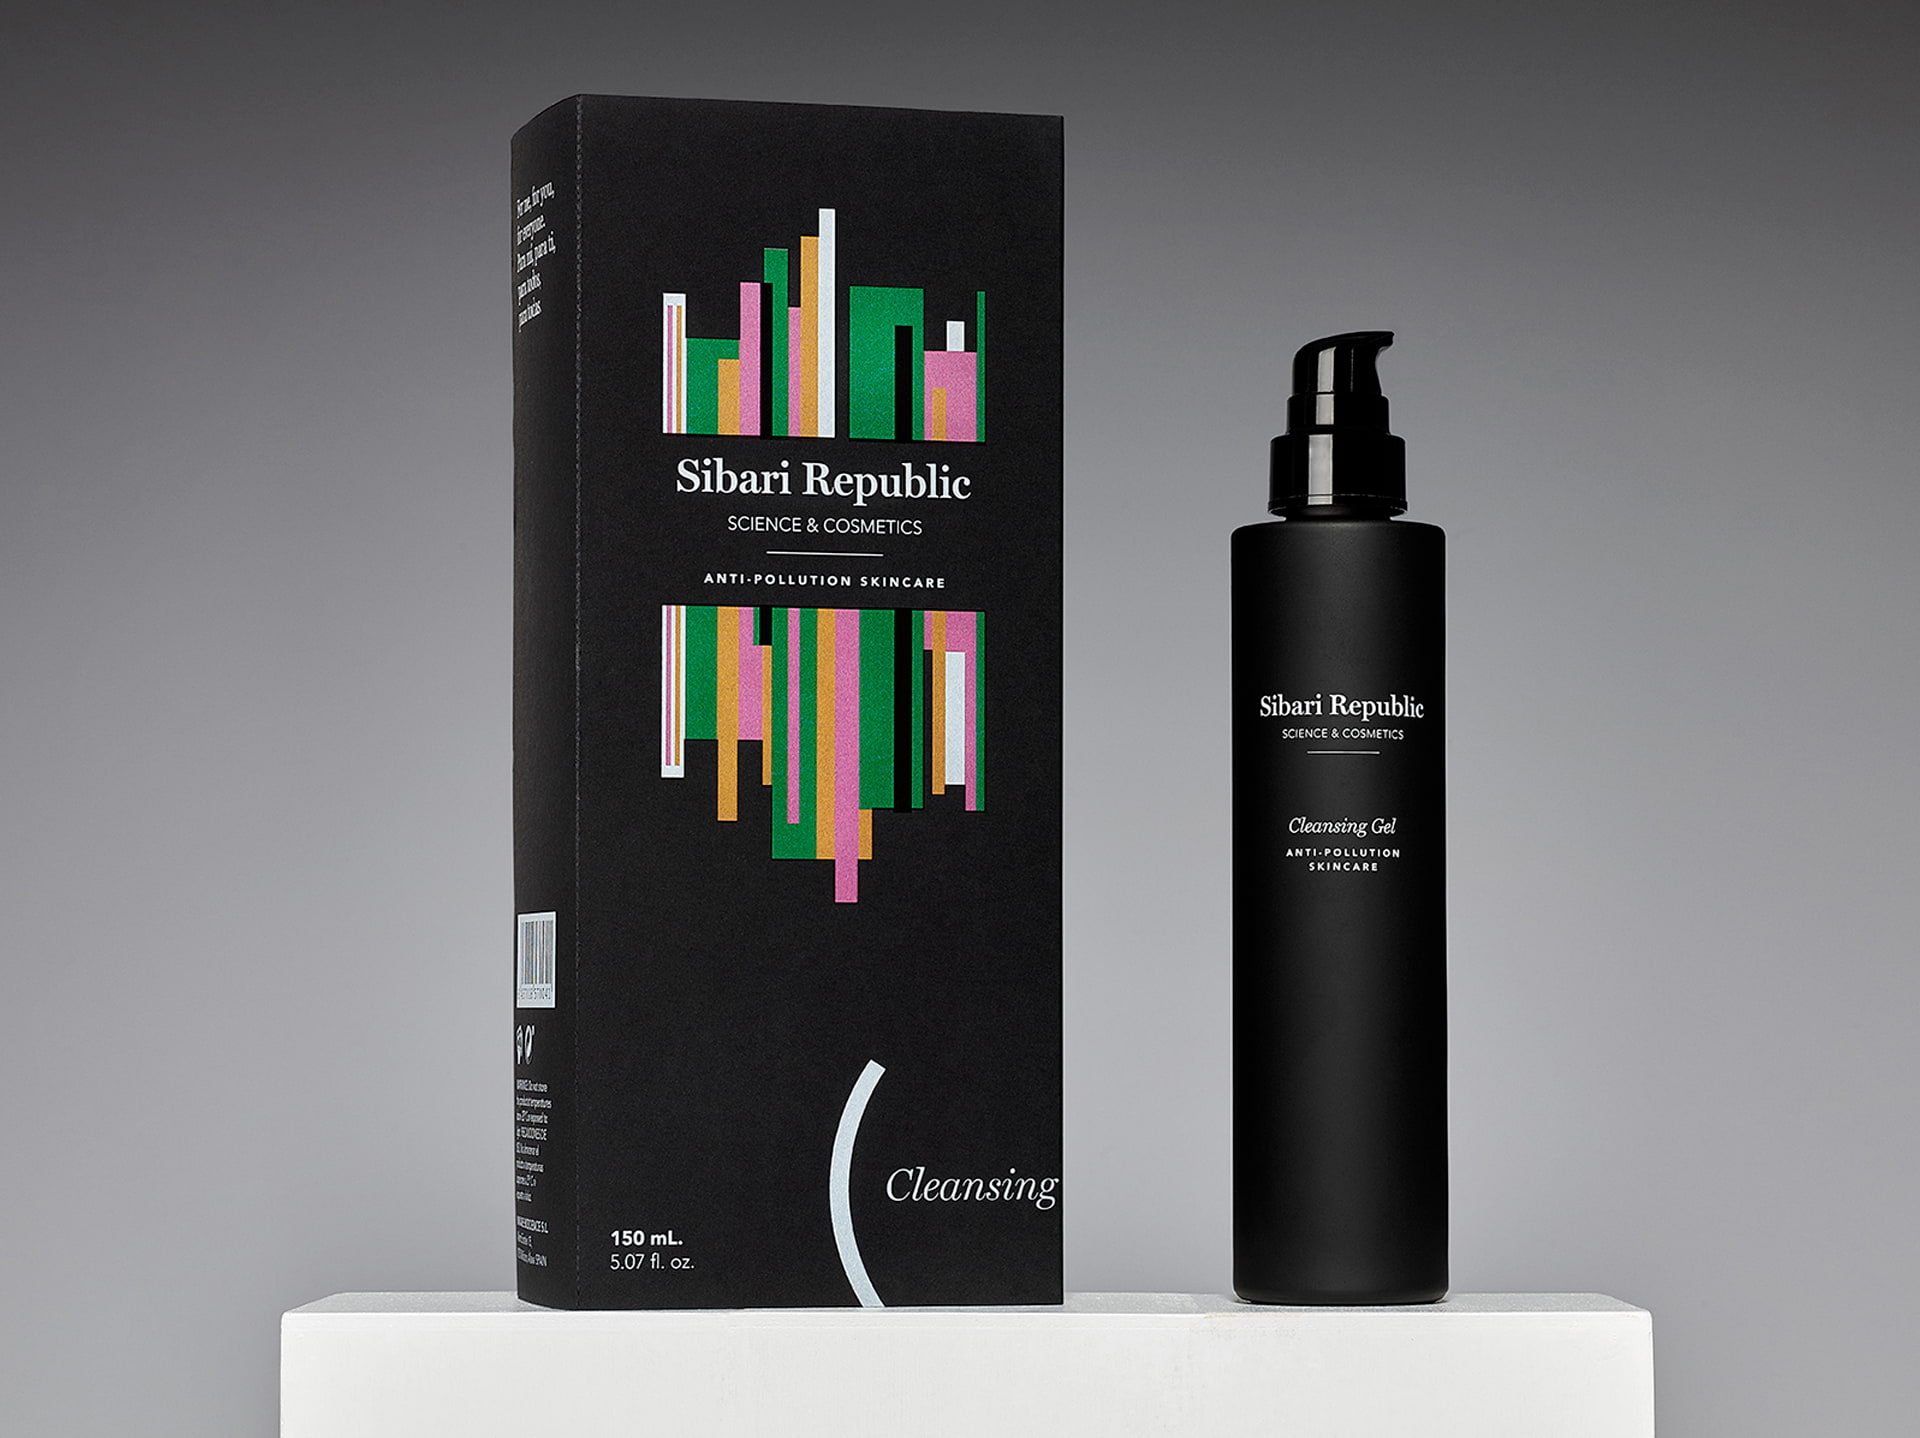 diseño de packaging anti-pollution skincare